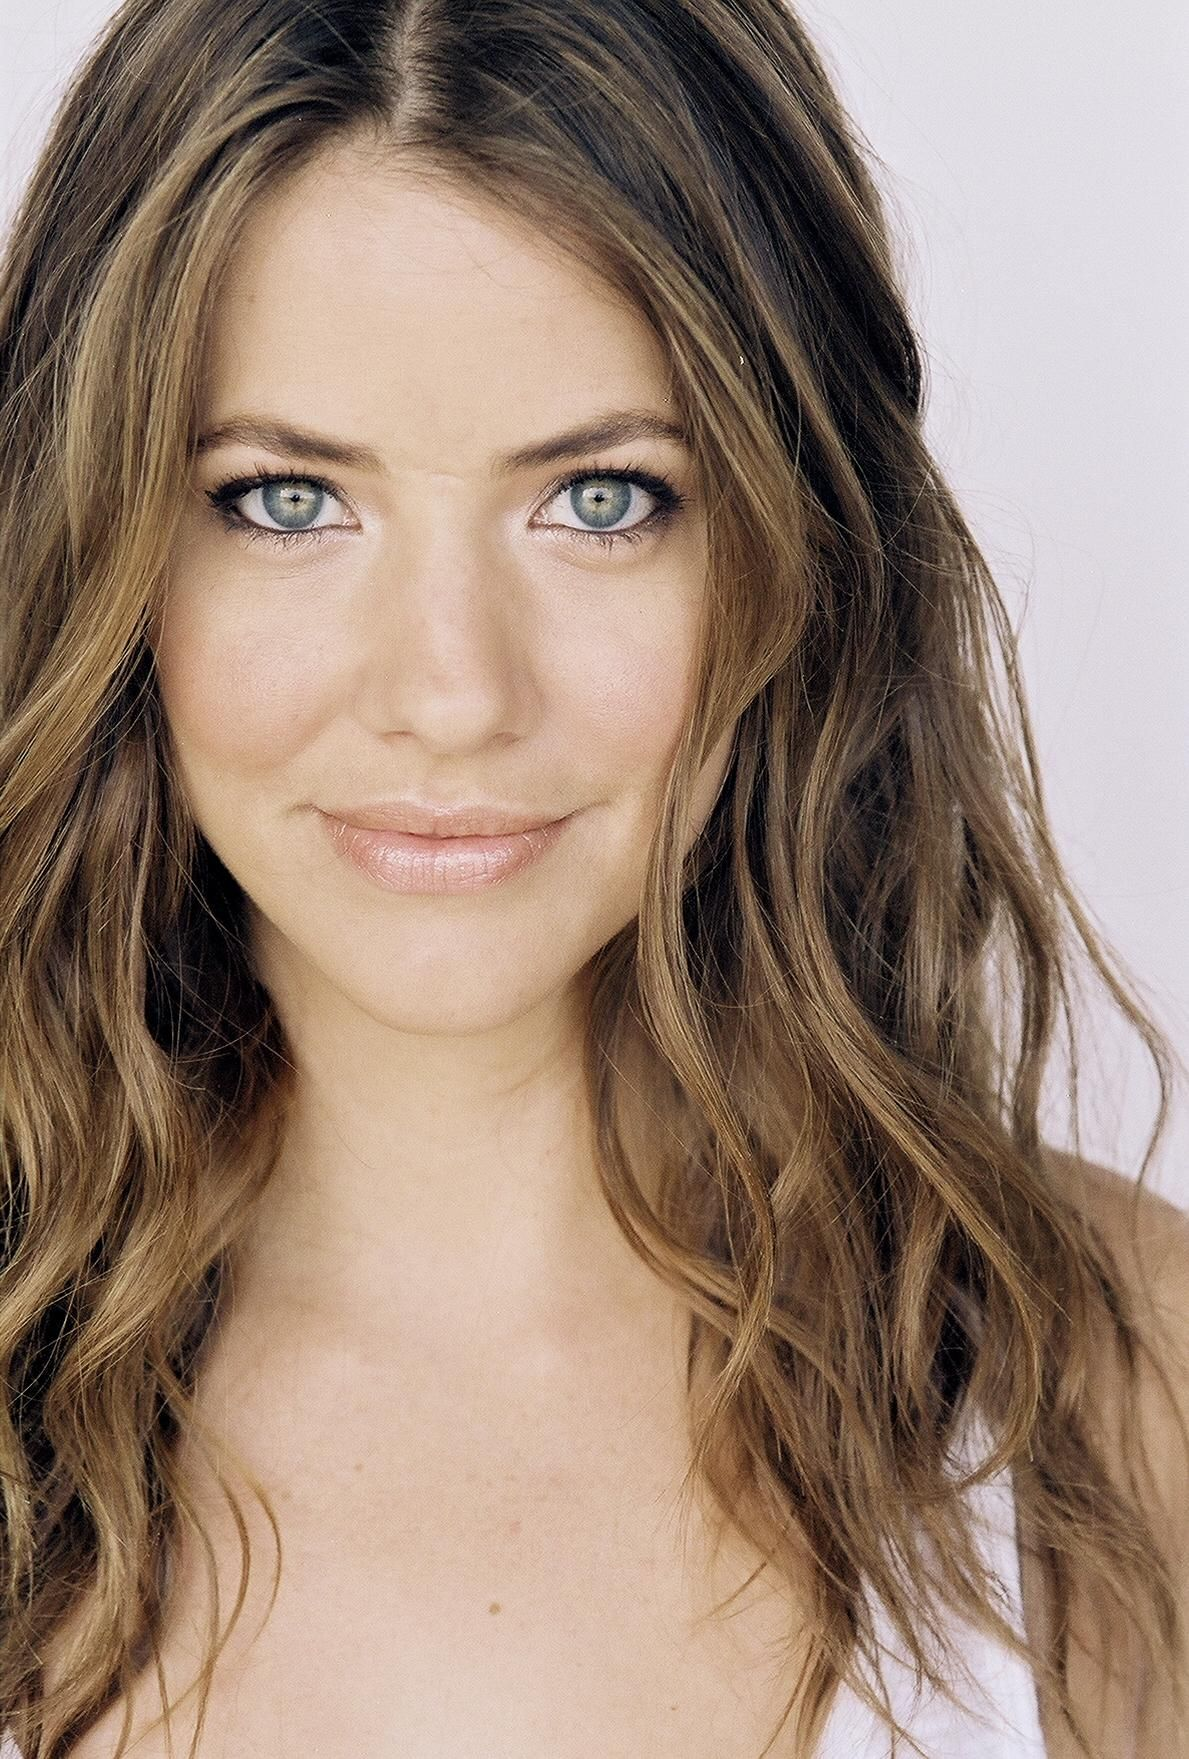 julie gonzalo hot